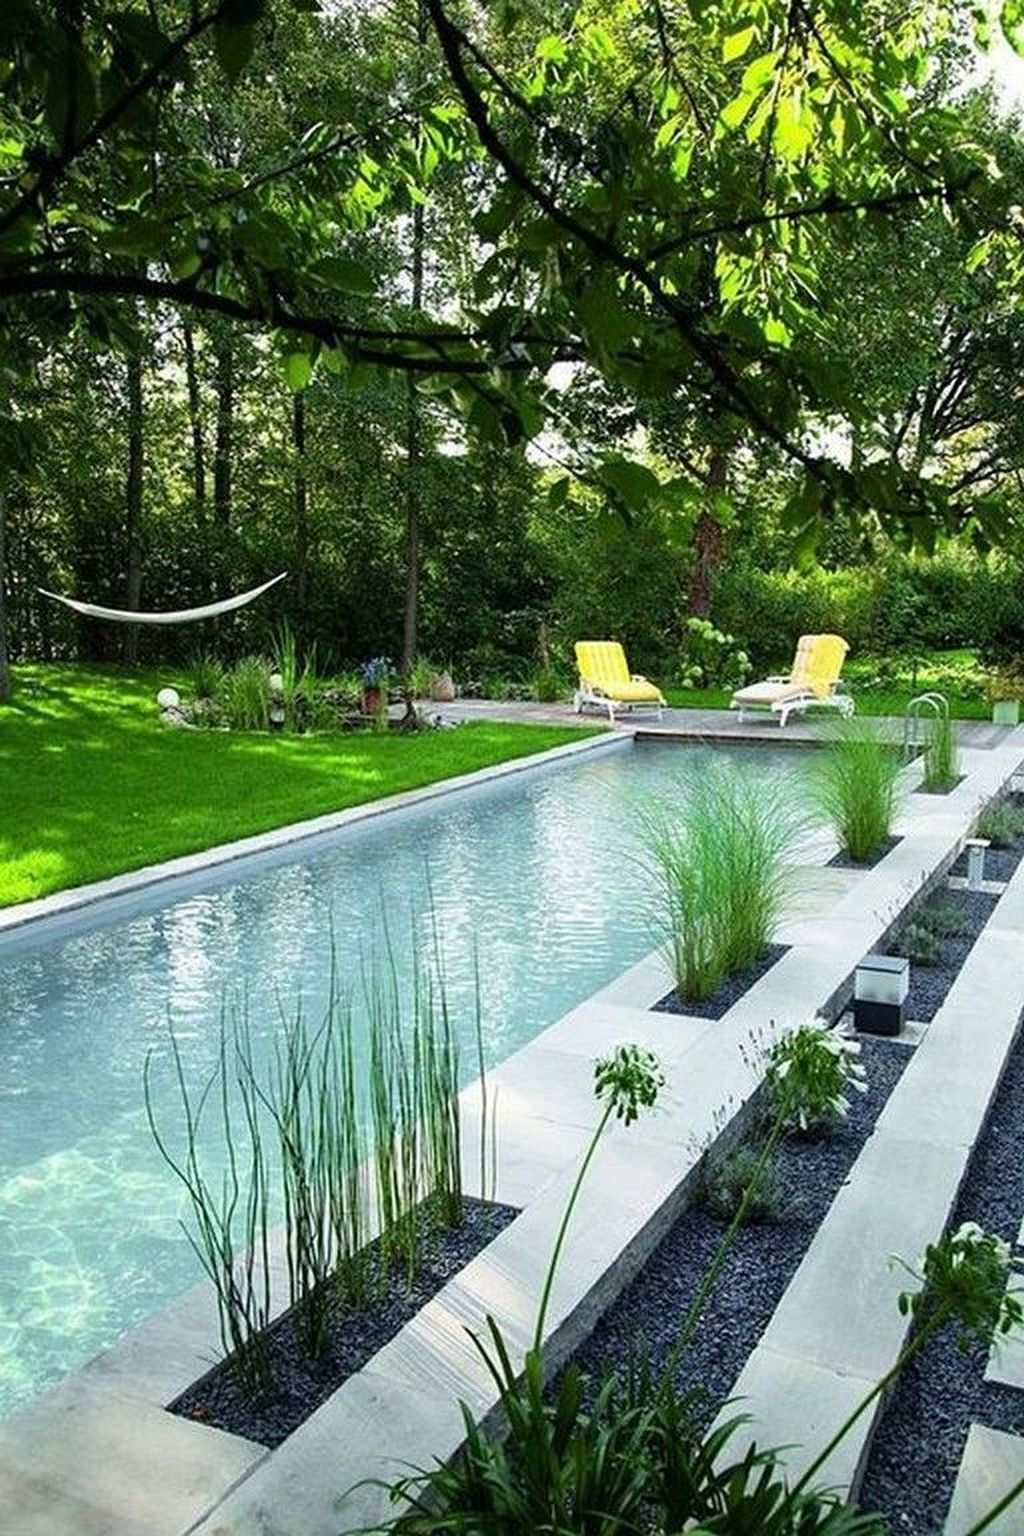 45 Landscaping Ideas For Backyard Swimming Pools In 2020 Swimming Pool Landscaping Pool Landscape Design Small Pool Design